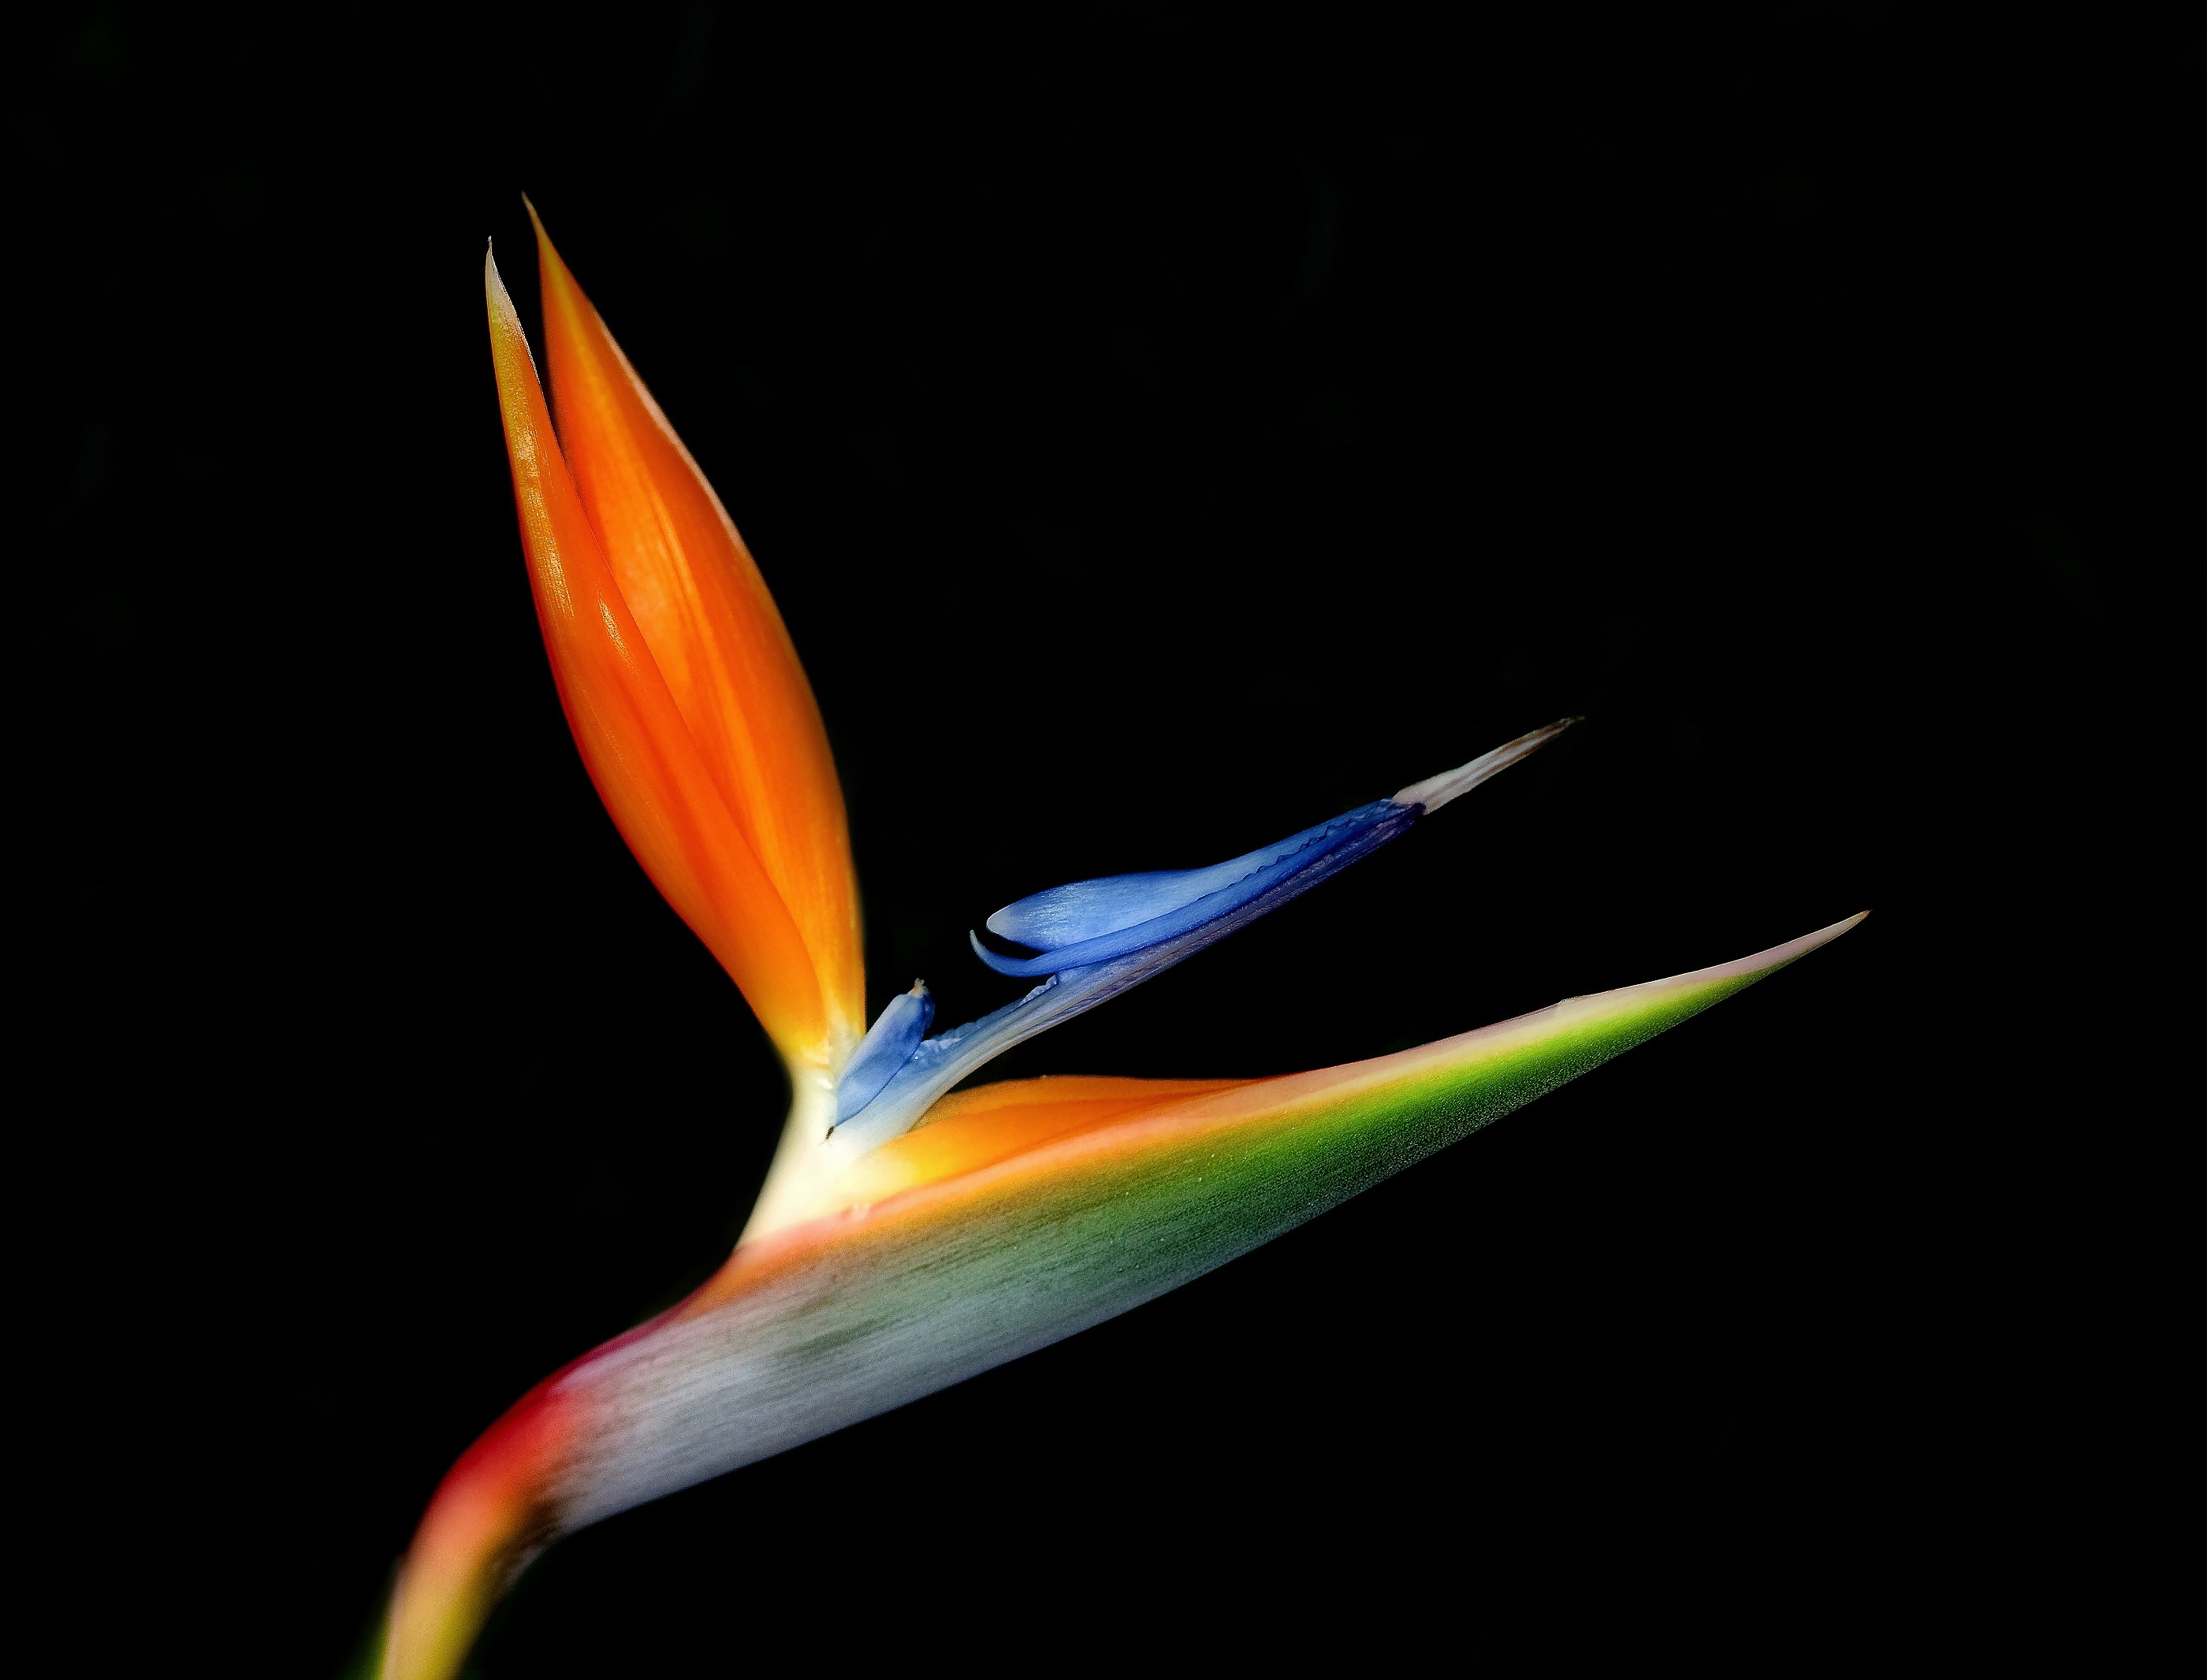 bird-of-paradise-flower-1835094